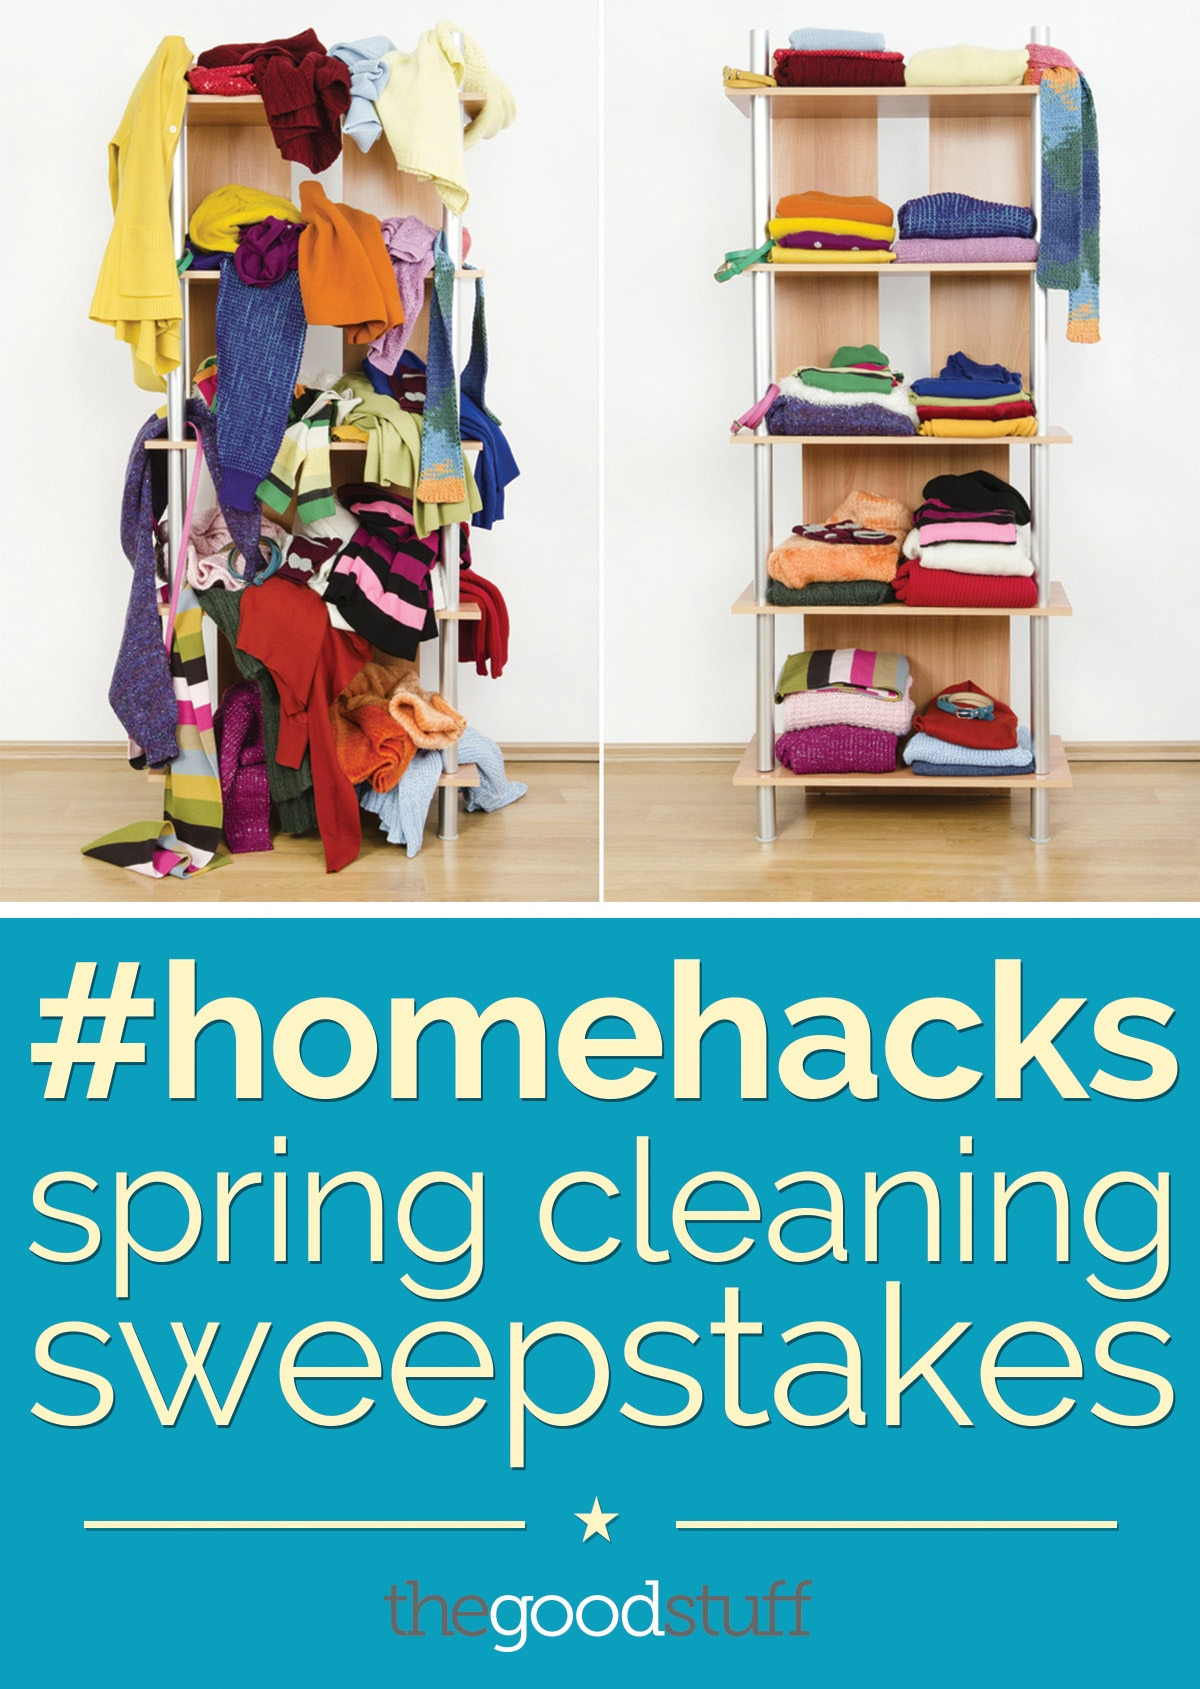 #homehacks spring cleaning sweepstakes